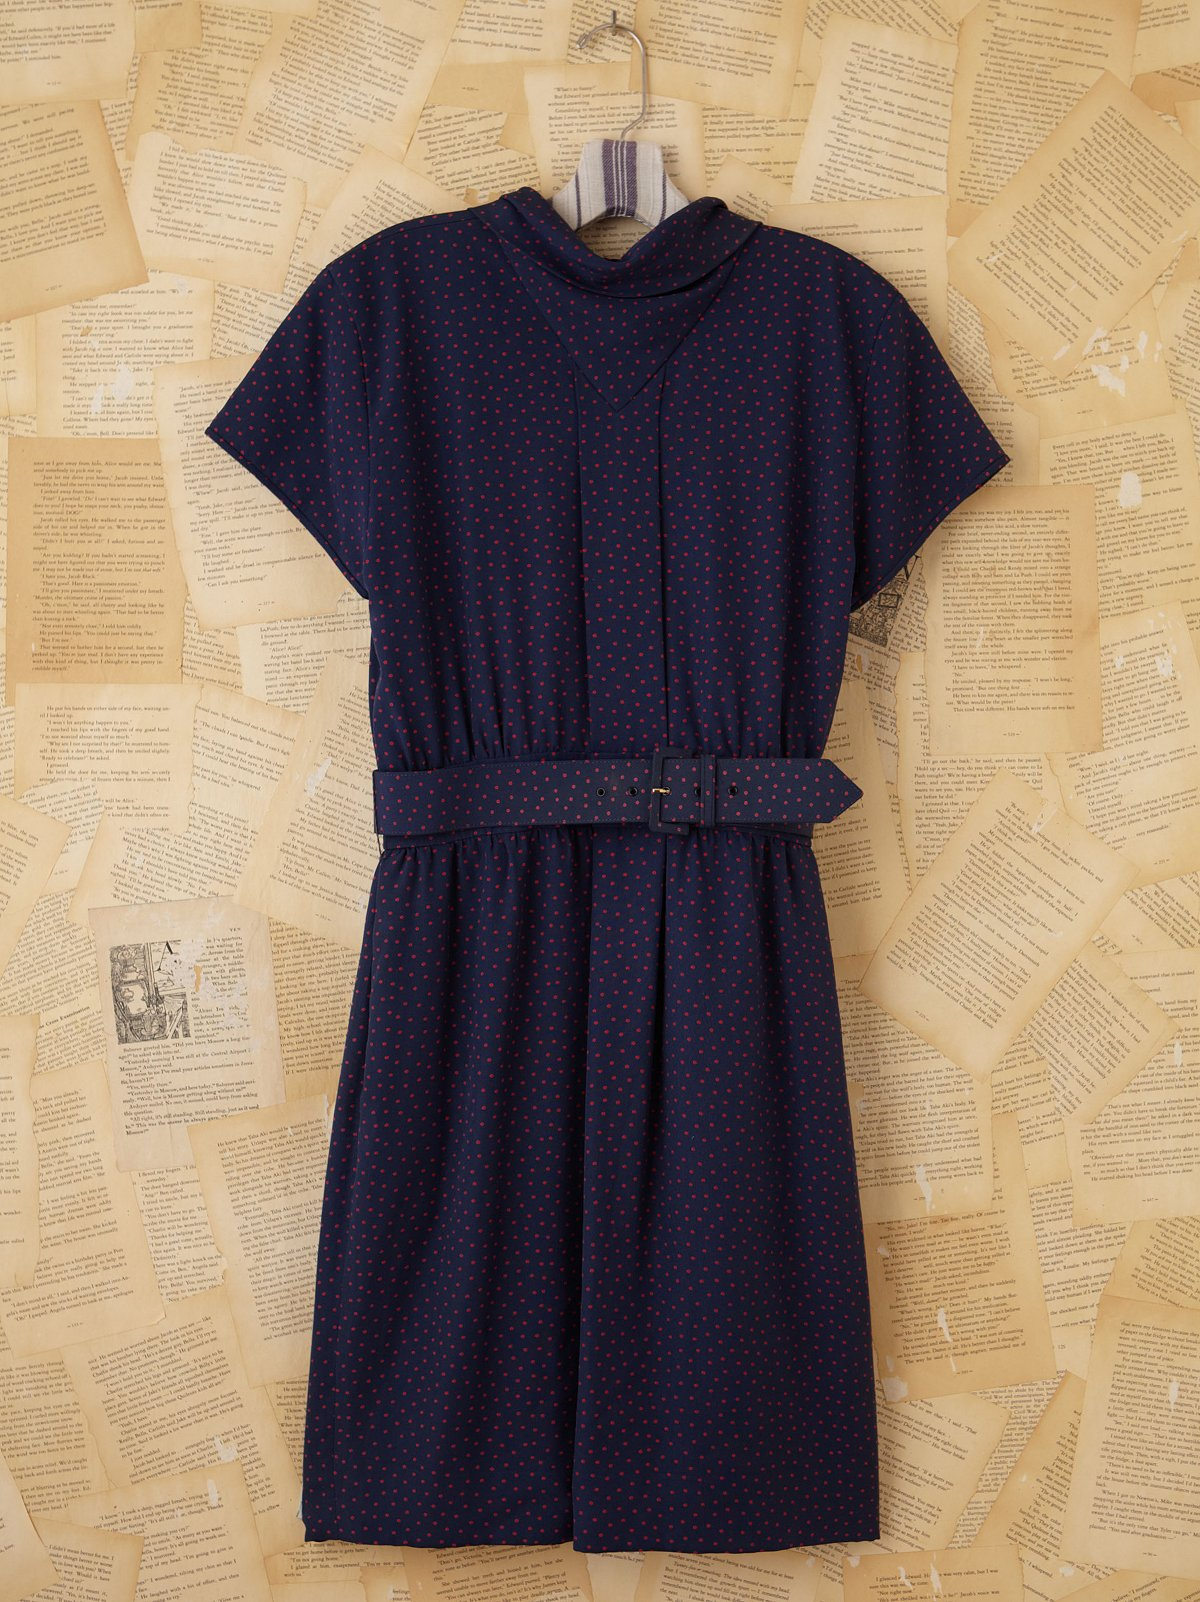 Vintage Valentino Blue Polka Dotted Dress